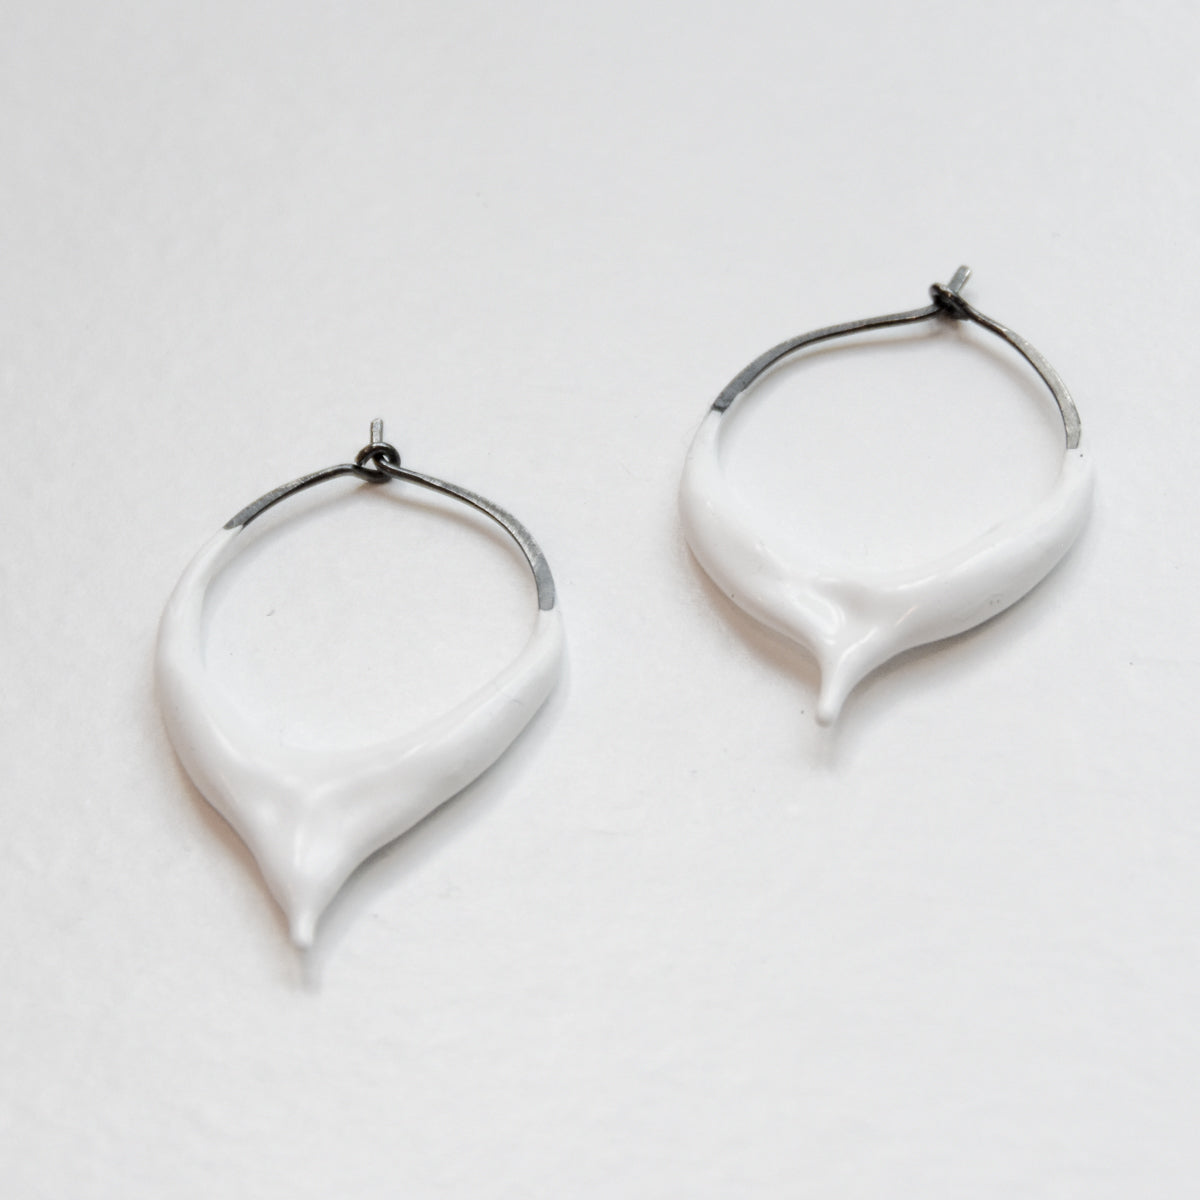 Super Drip - Oxidized Sterling Silver - Frothy White